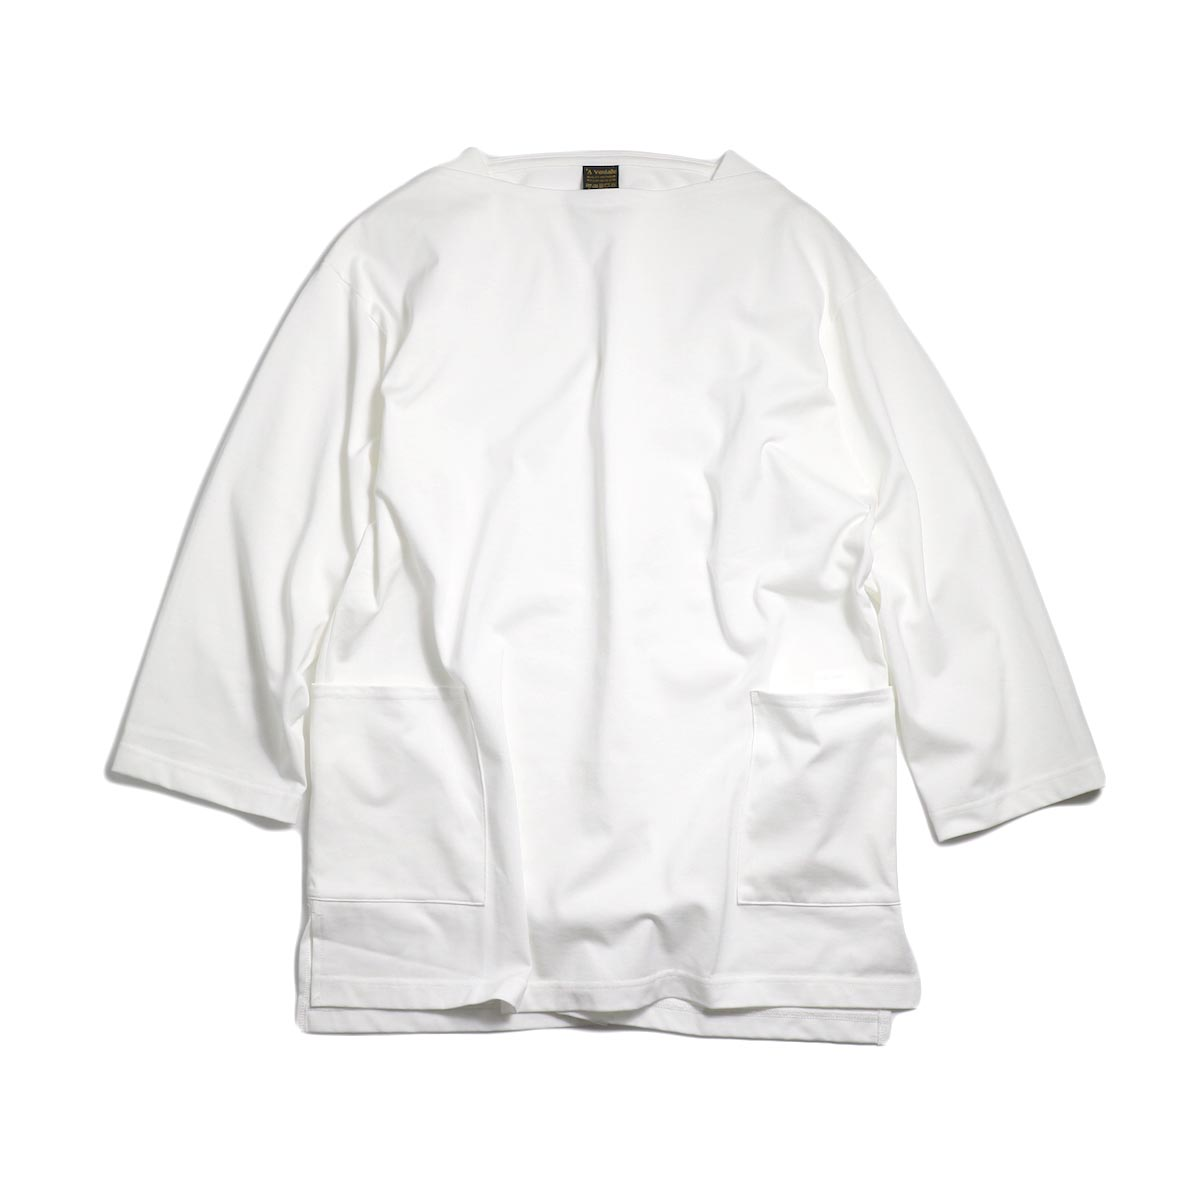 A VONTADE / Boatneck 3/4 Sleeve -White